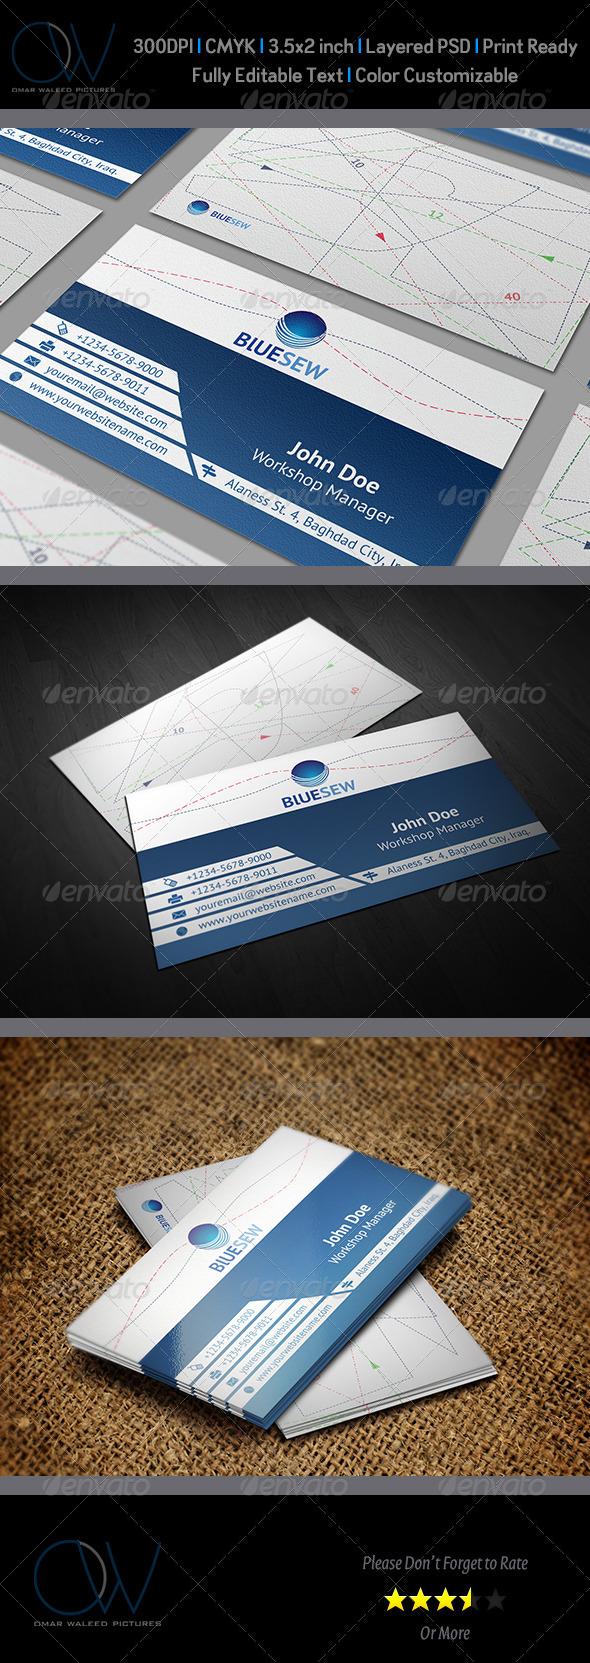 Sew Shop Business Card - Corporate Business Cards